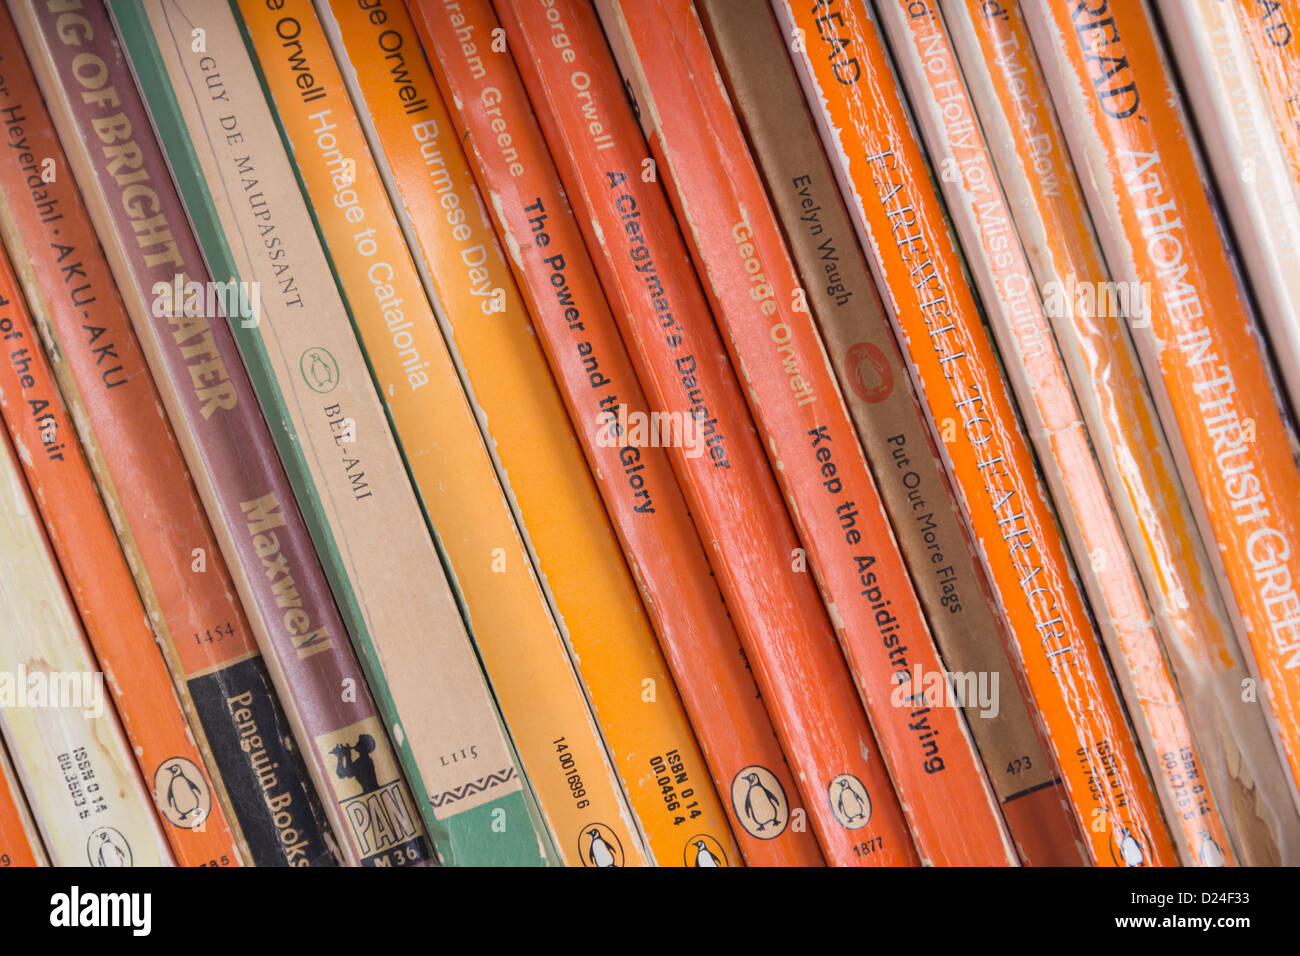 A shelf of paperback books published by Penguin, many by well-known authors: Evelyn Waugh, George Orwell, Graham - Stock Image